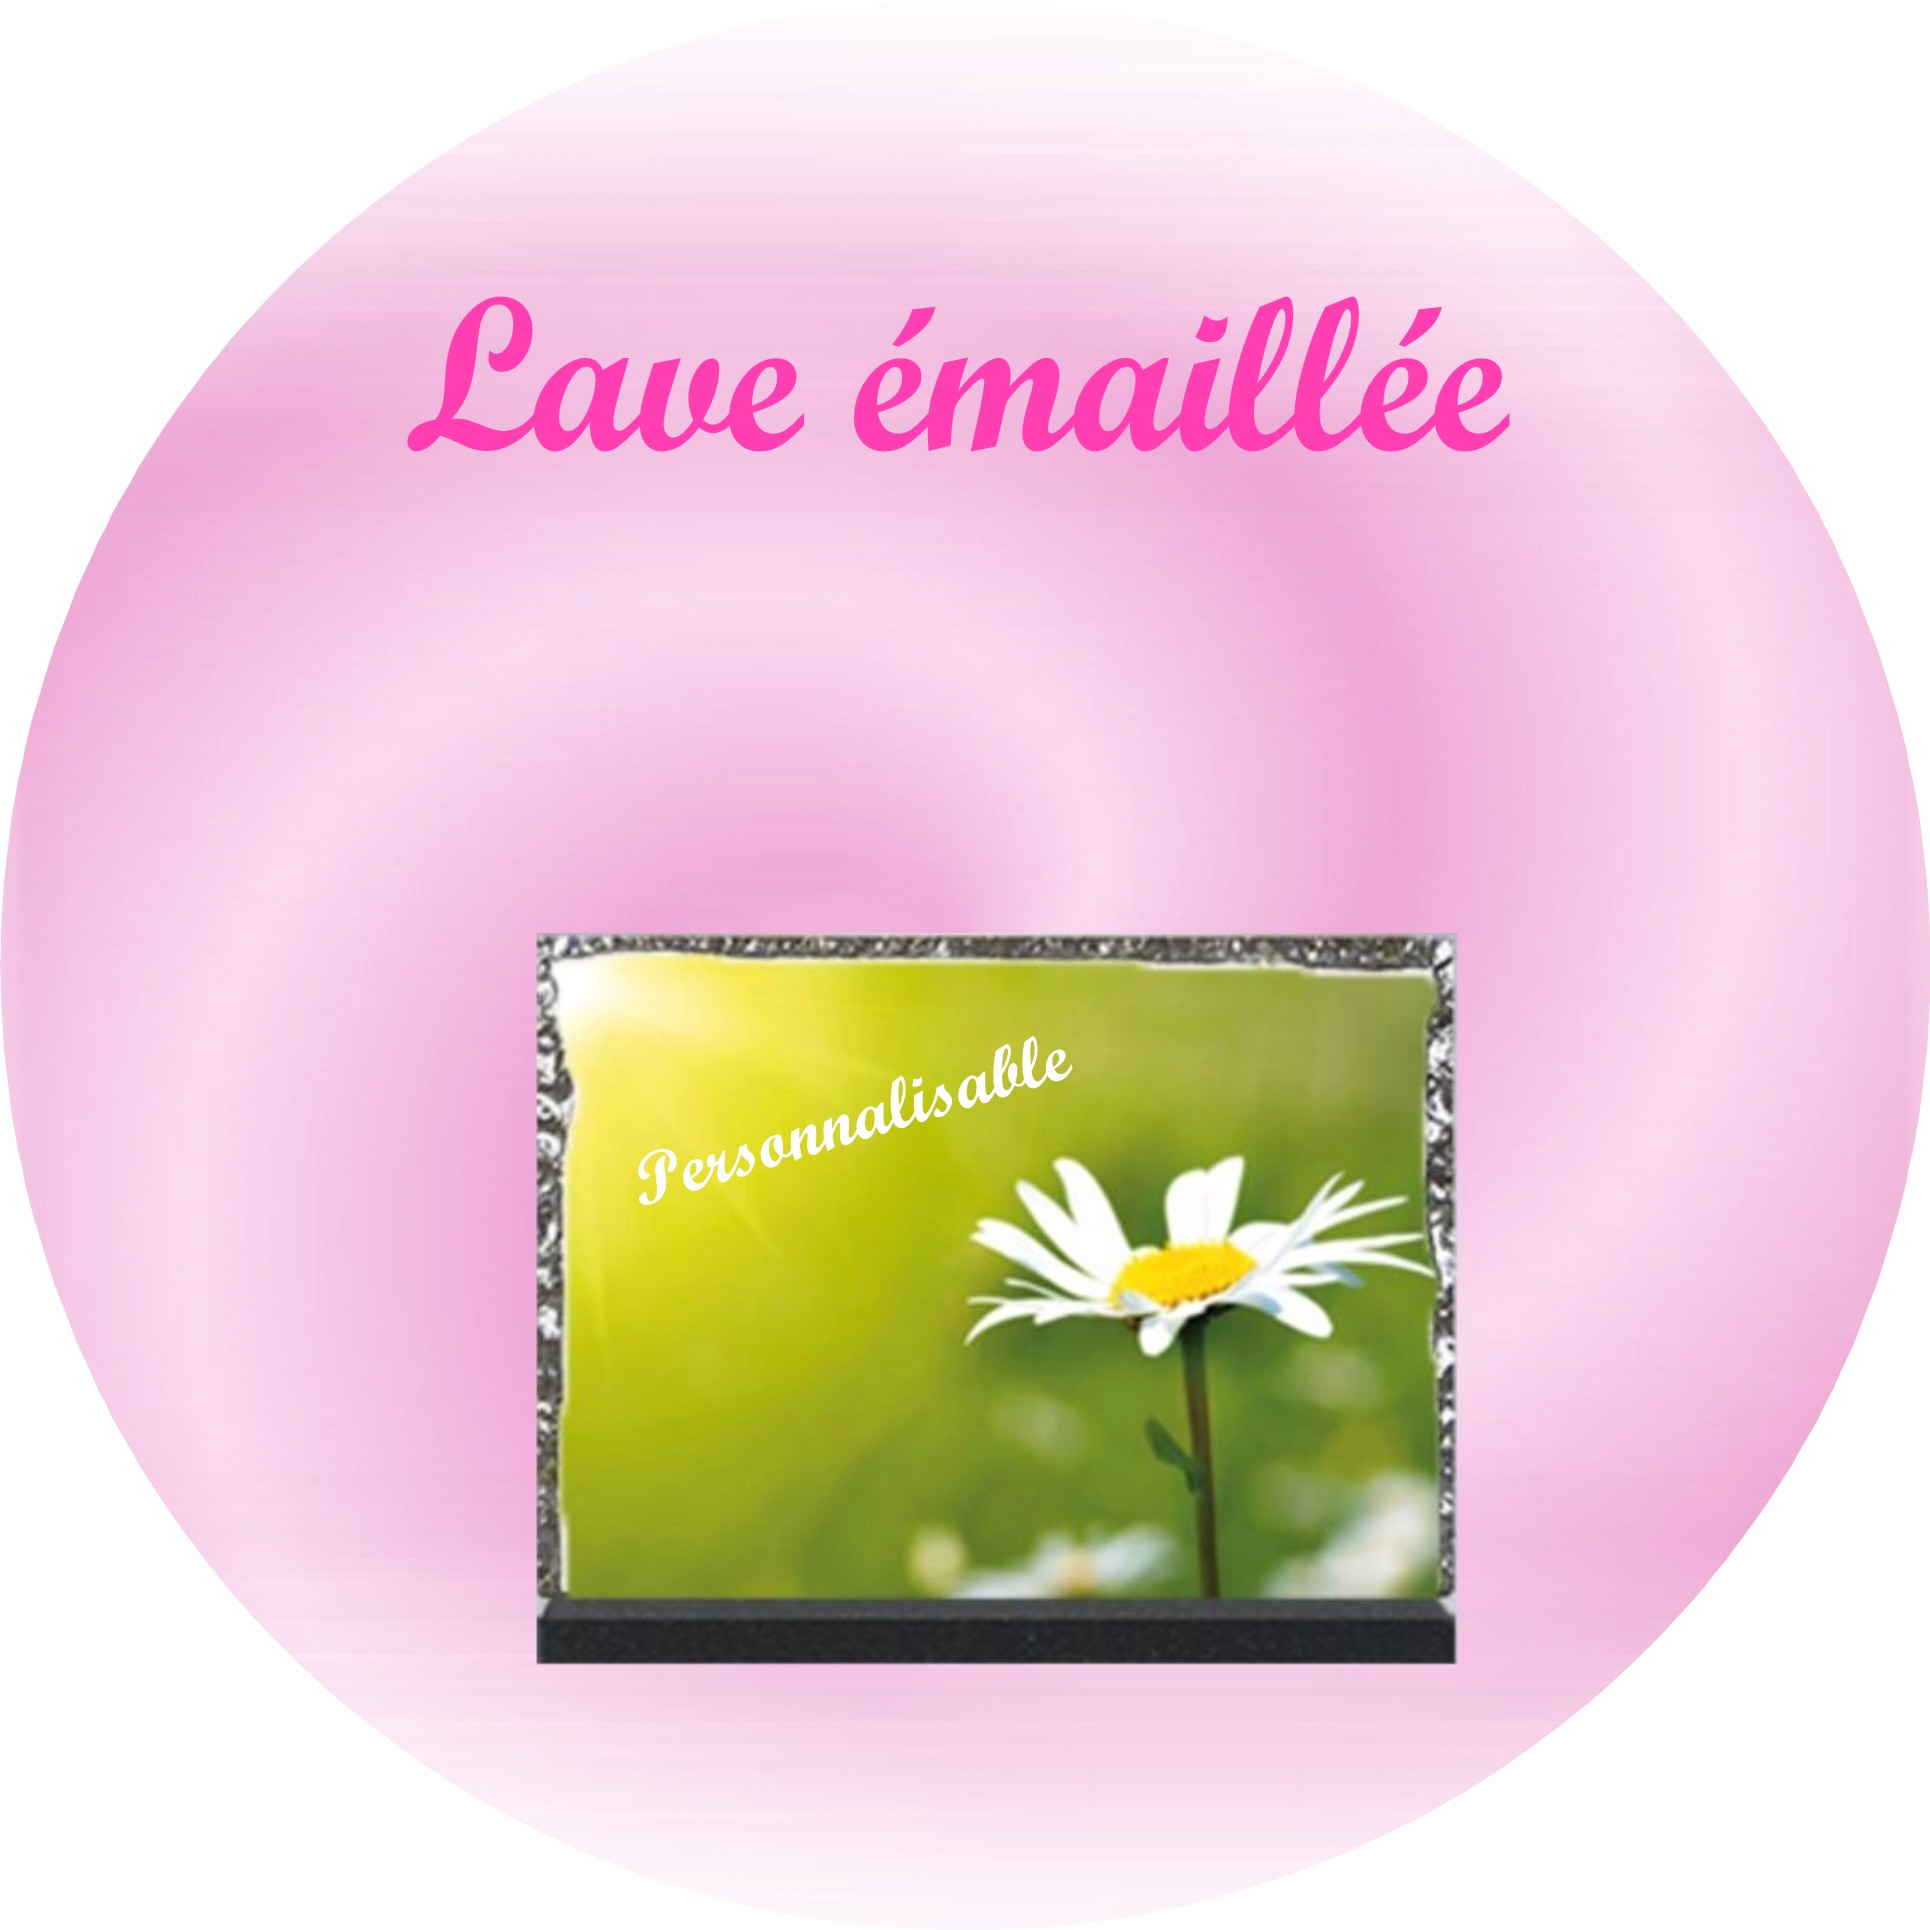 LAVE EMAILLEE